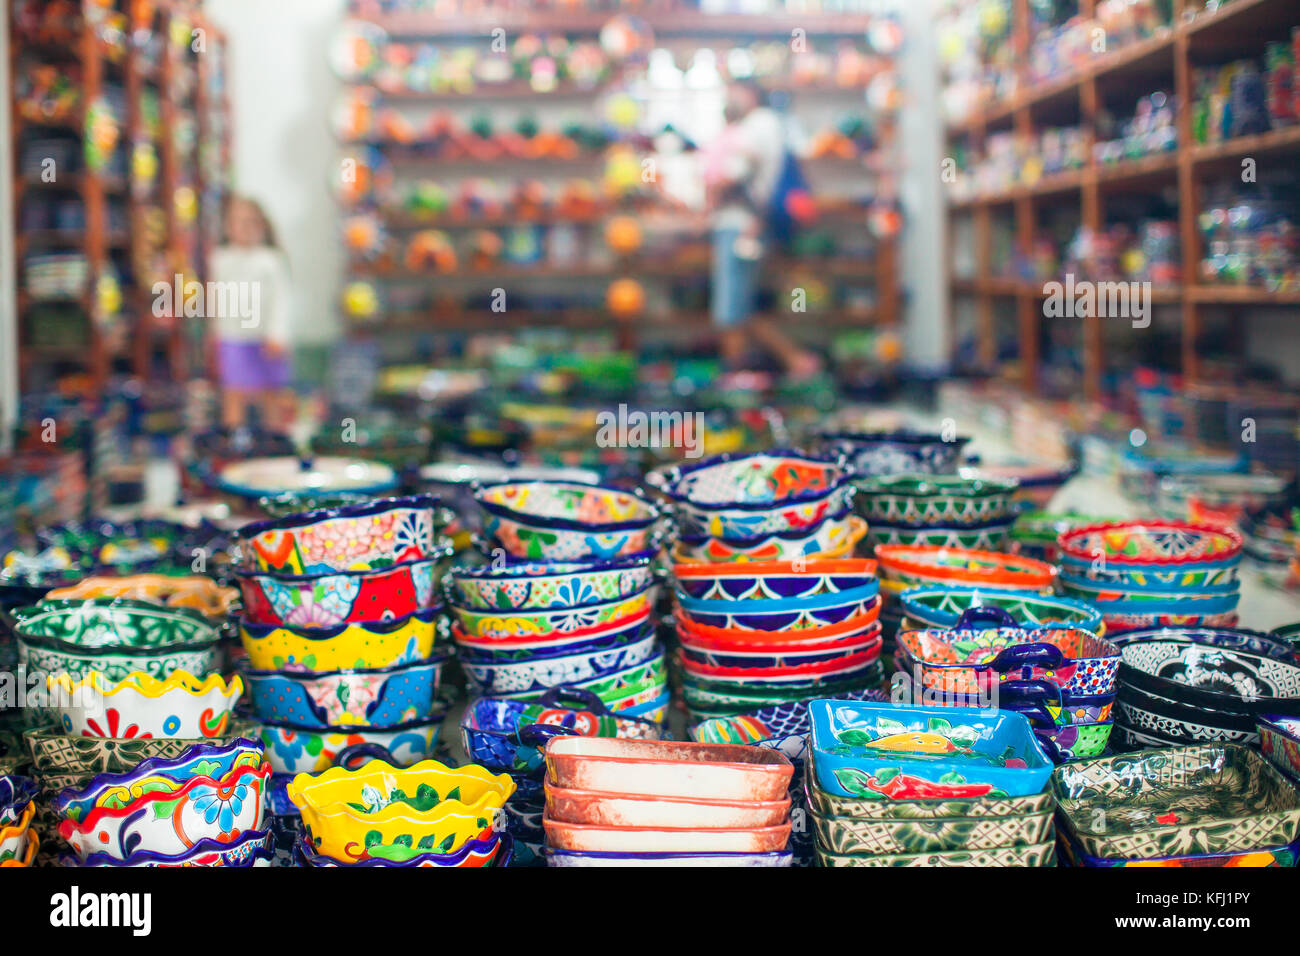 ceramics mexico yucatan stockfotos ceramics mexico yucatan bilder alamy. Black Bedroom Furniture Sets. Home Design Ideas